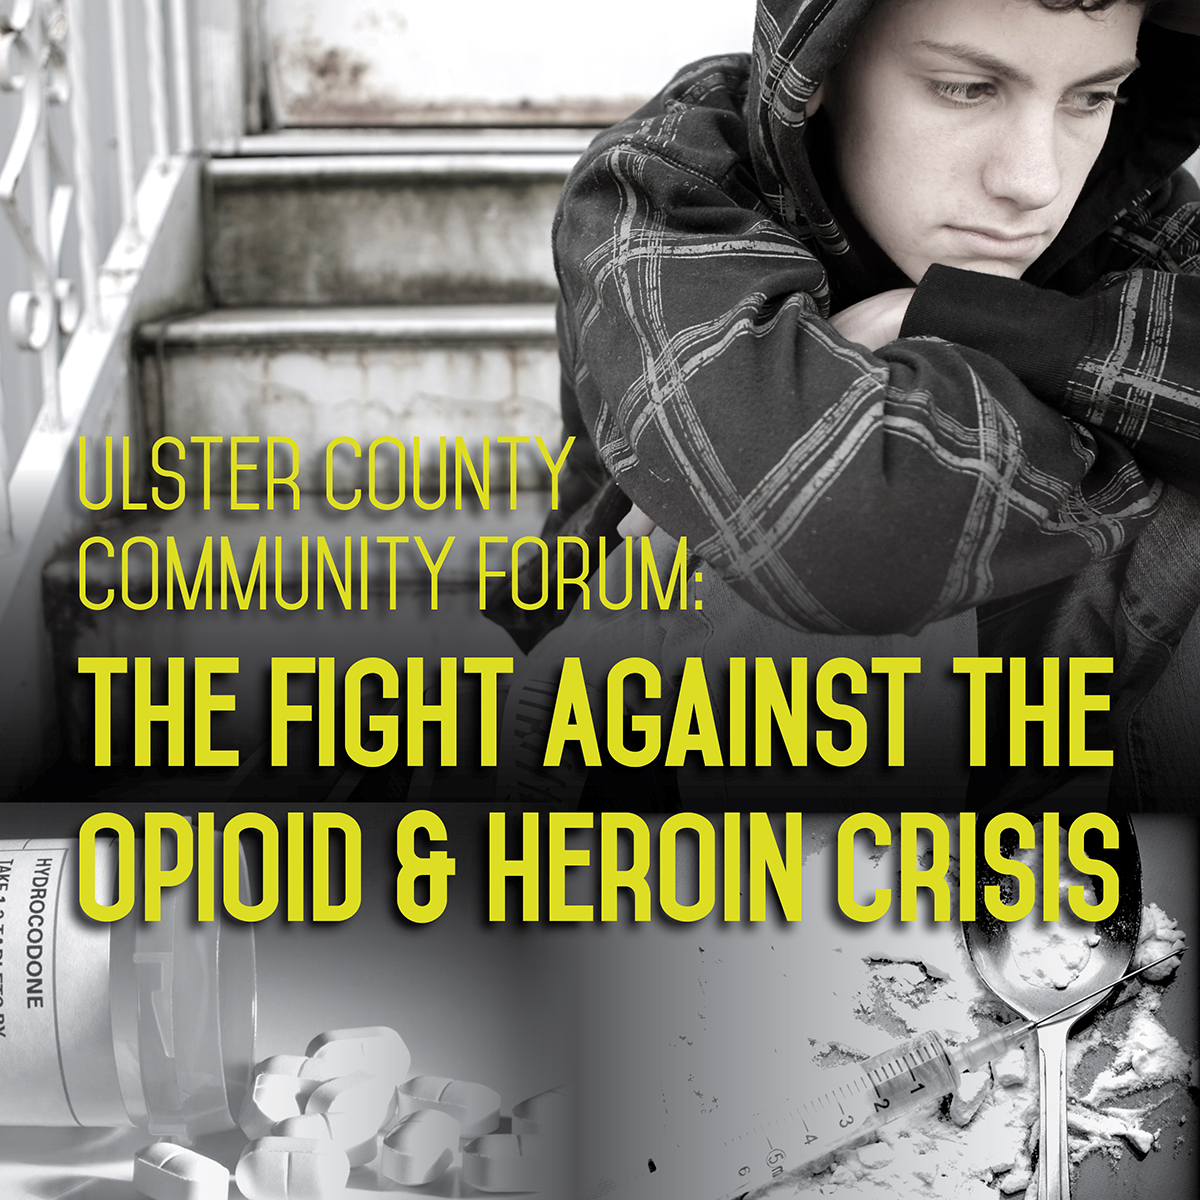 Living Heroin Dating Forums Recovering A Addict distinctly